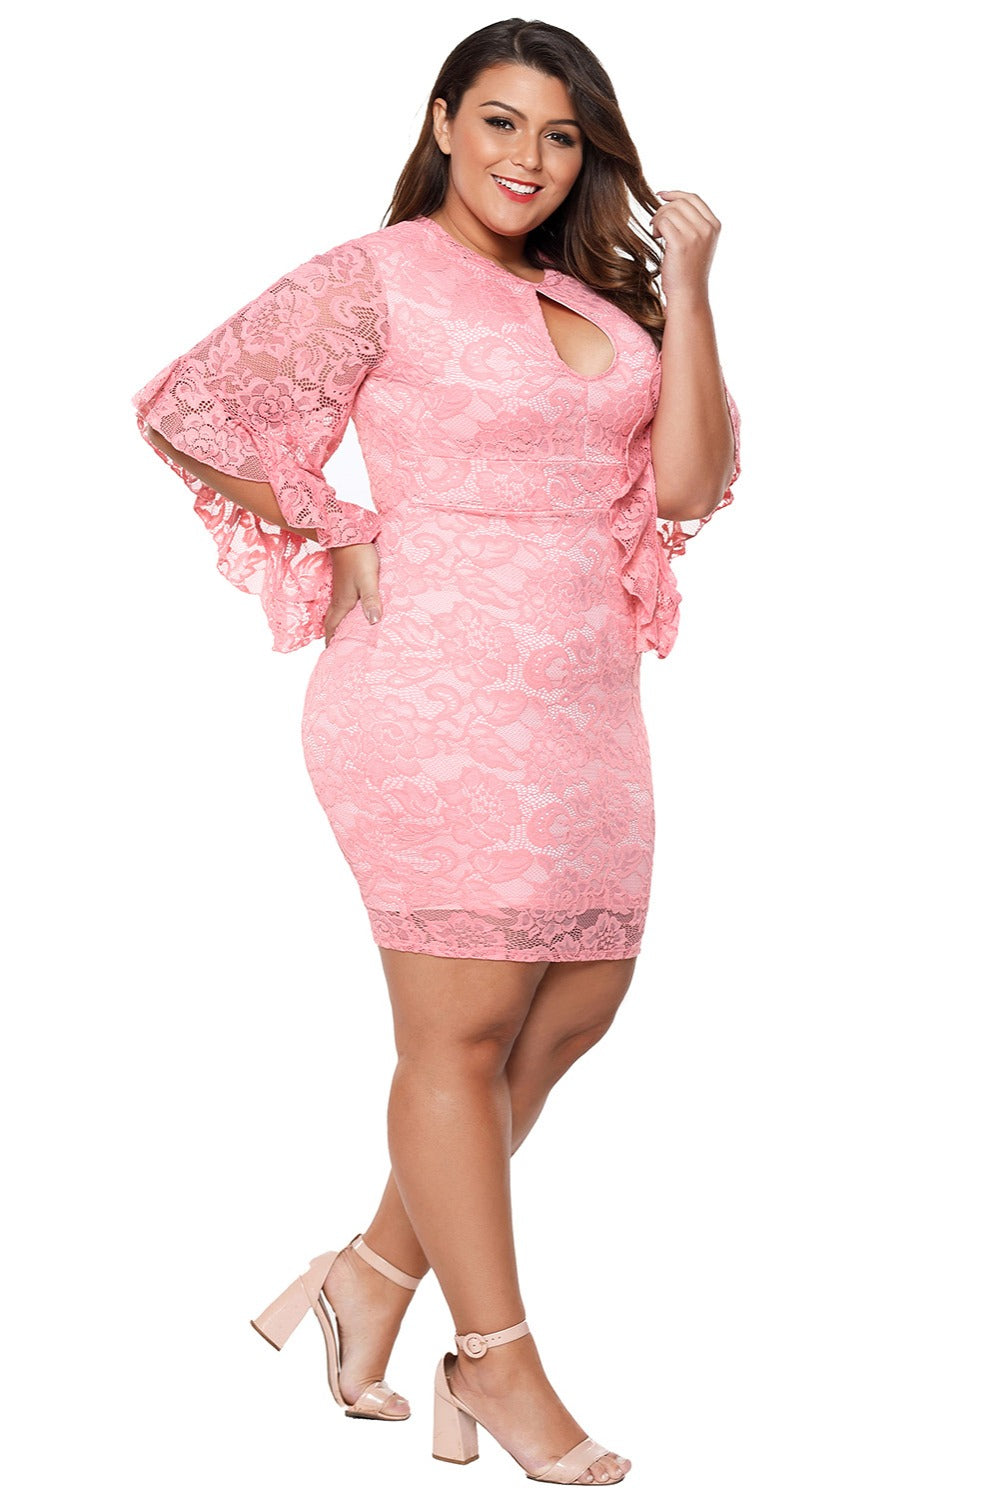 Lace Overlay Plus Size Mini Party Look Dress Woven Trends